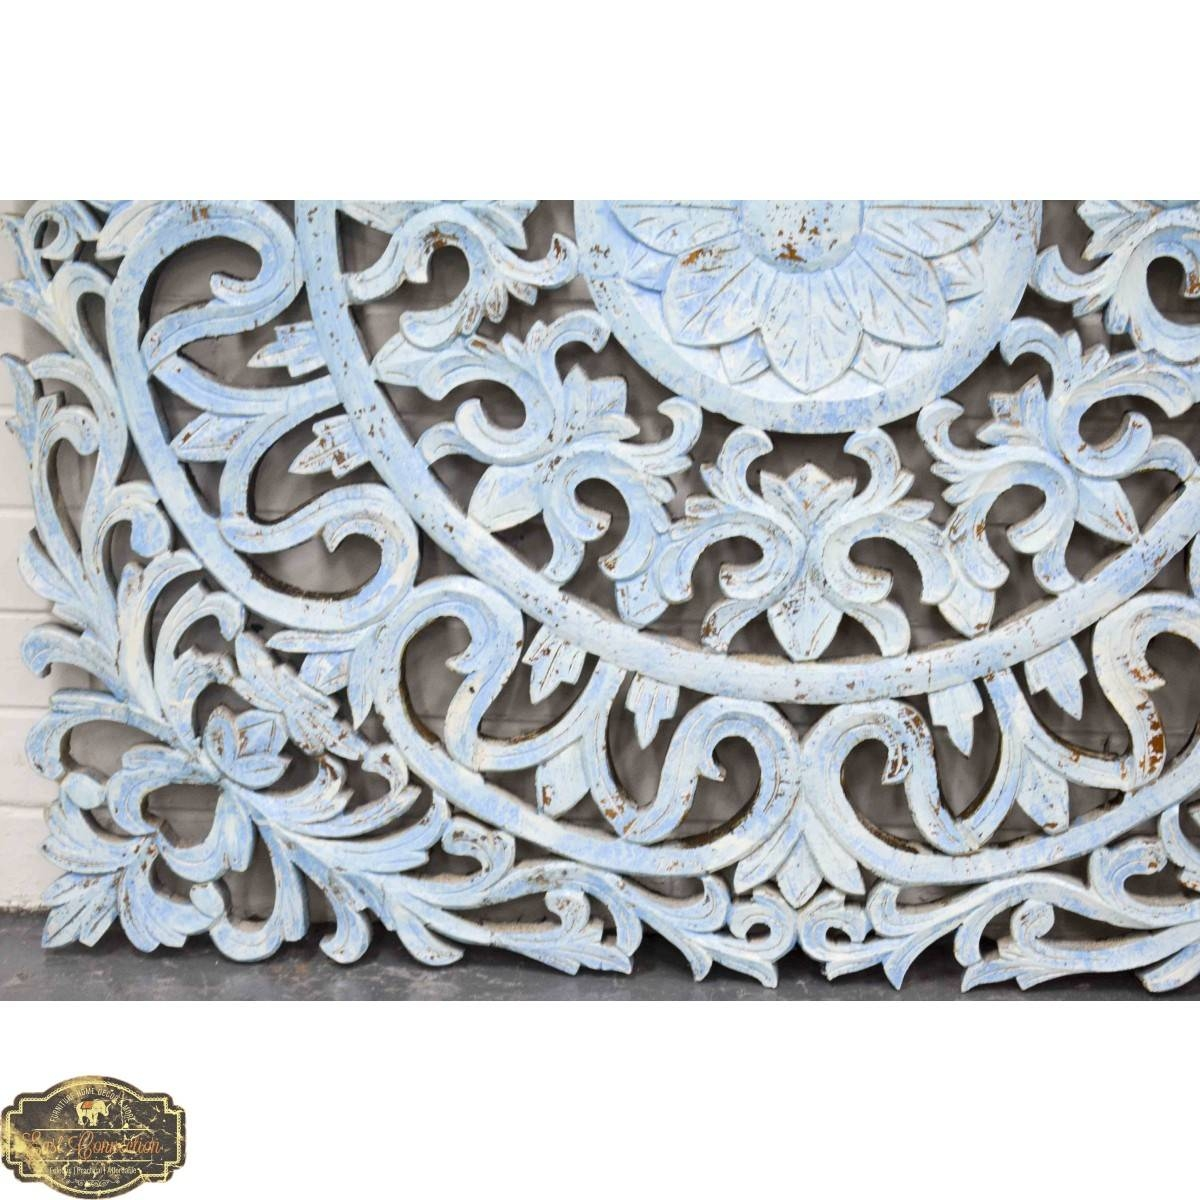 Hand Carved Antique Pattern Timber Wall Art Panel Intended For Current Pattern Wall Art (View 14 of 20)